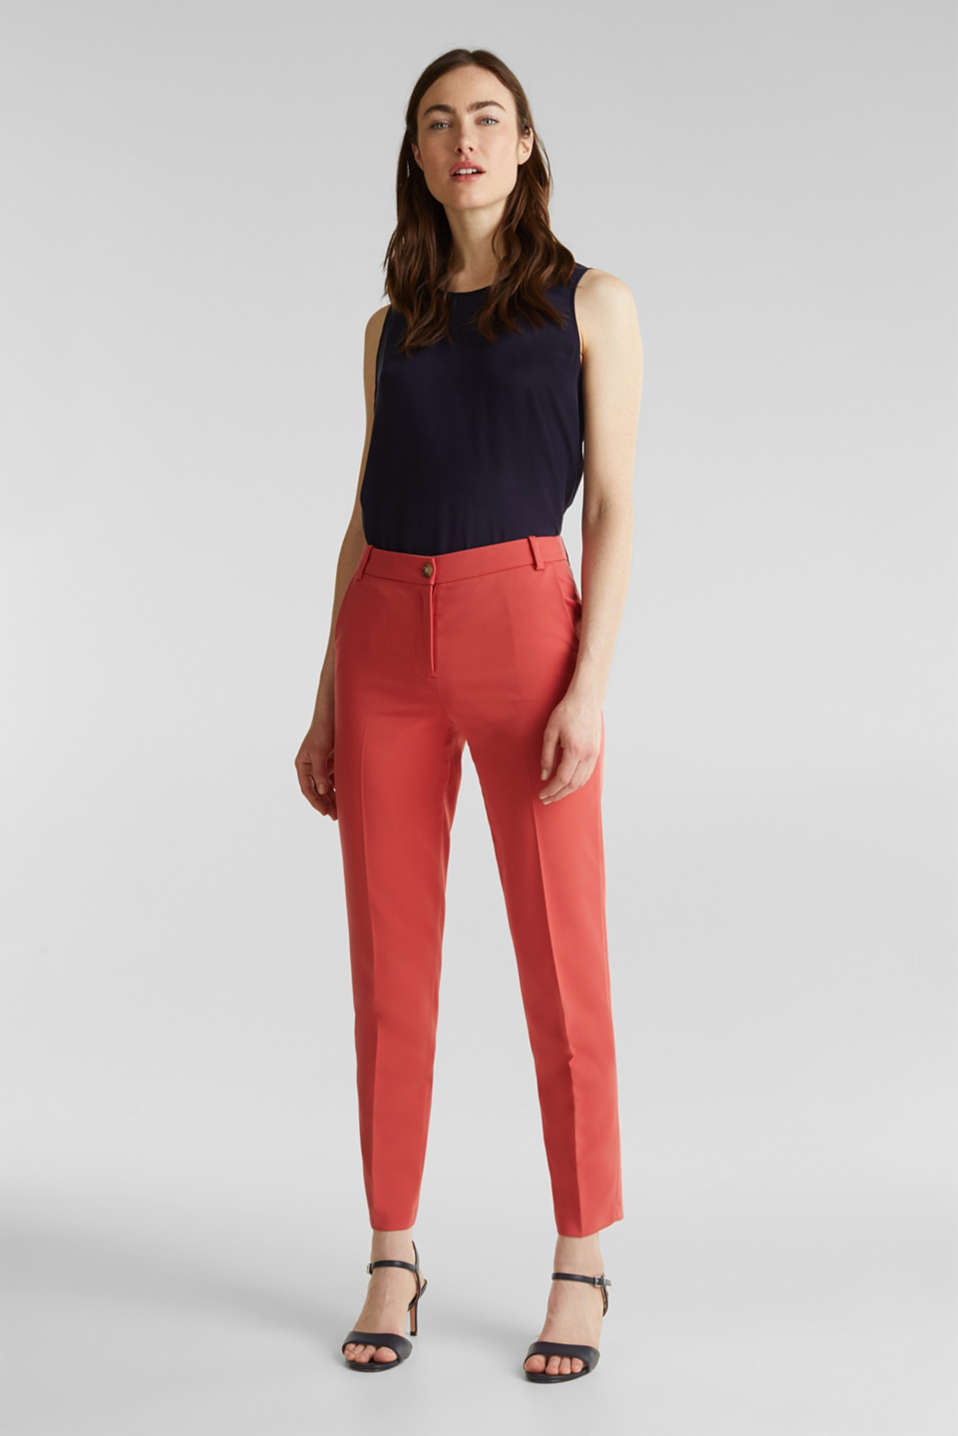 SOFT STRUCTURE Mix + Match stretch trousers